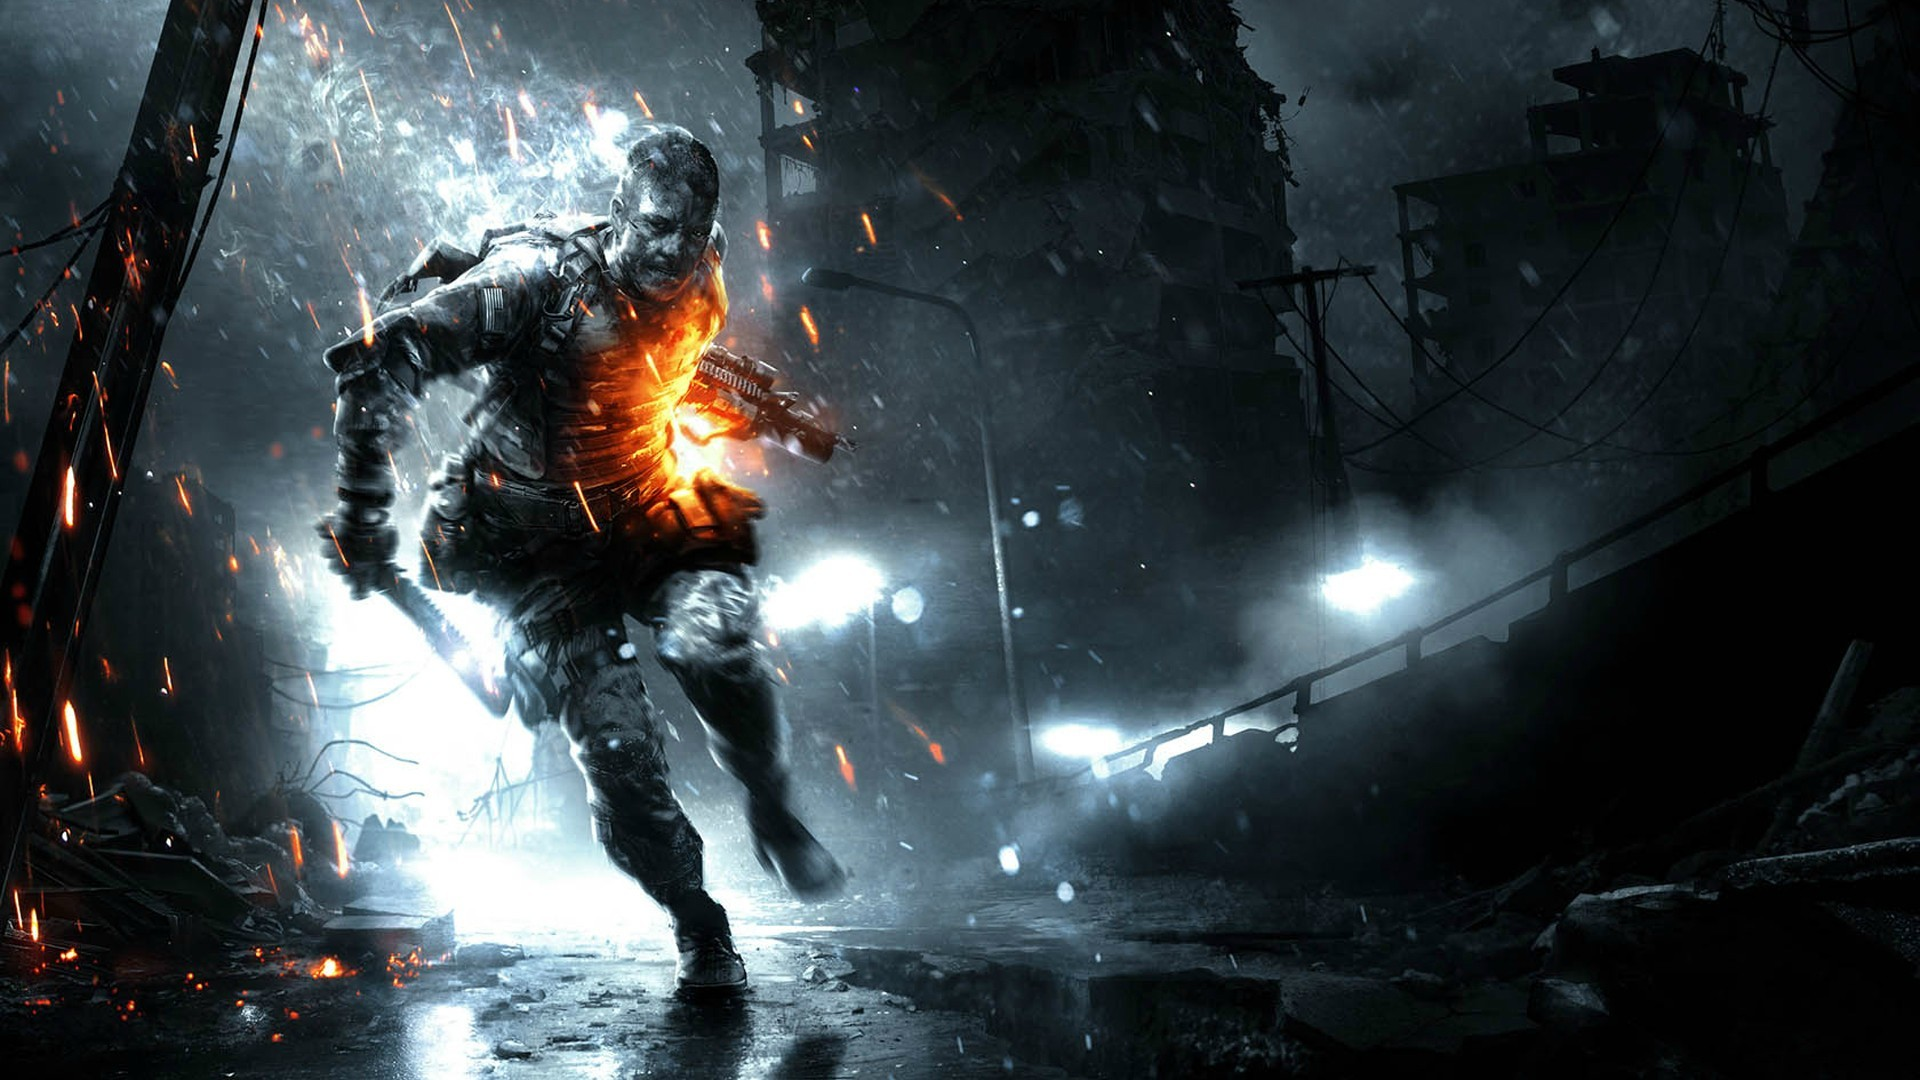 1920x1080 A collection of 354 Gaming Wallpapers, all 1080p